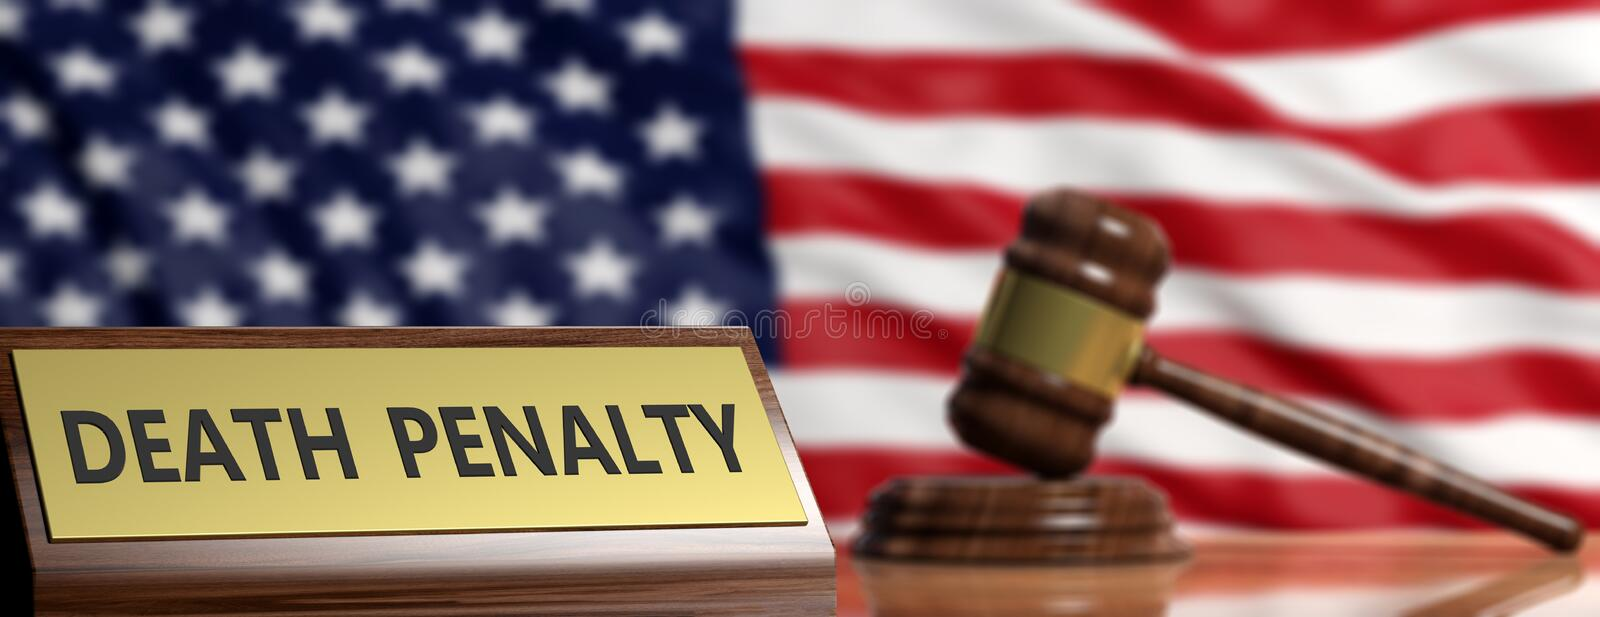 Death Penalty In USA Judge Gavel On US America Flag Background 3d